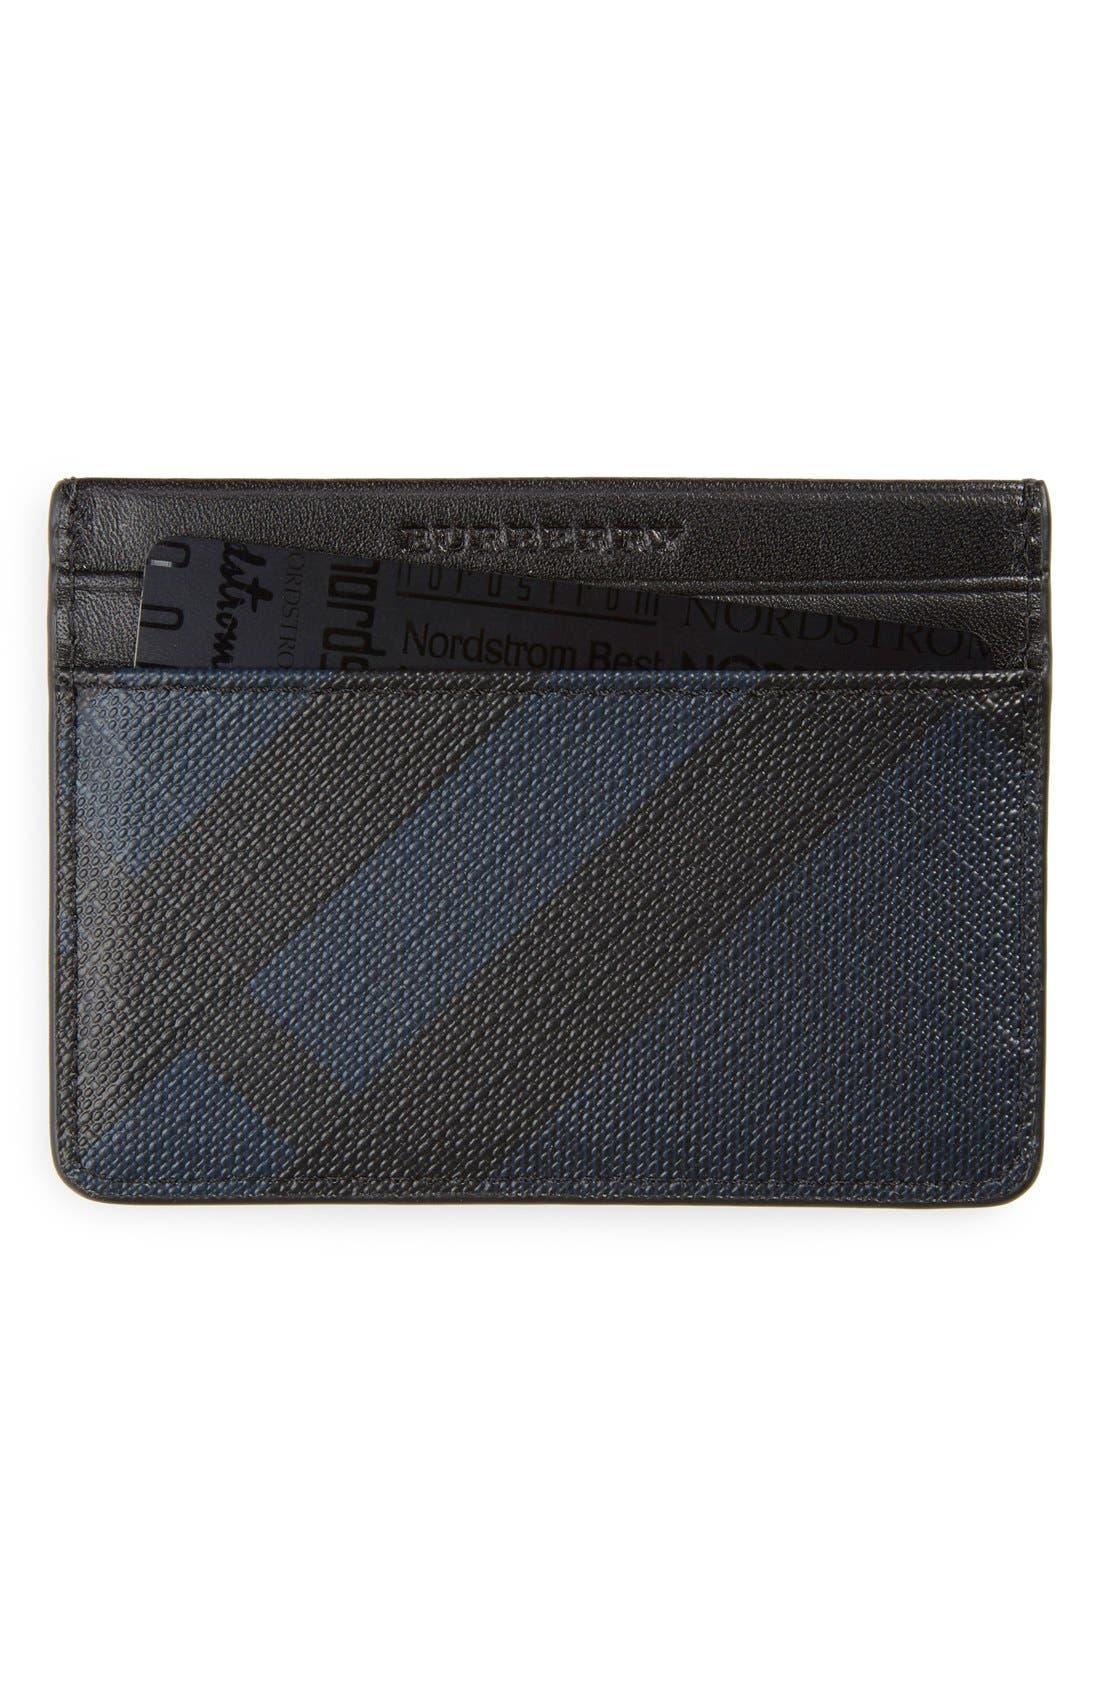 'New London' Check Card Case,                         Main,                         color, Navy/ Black